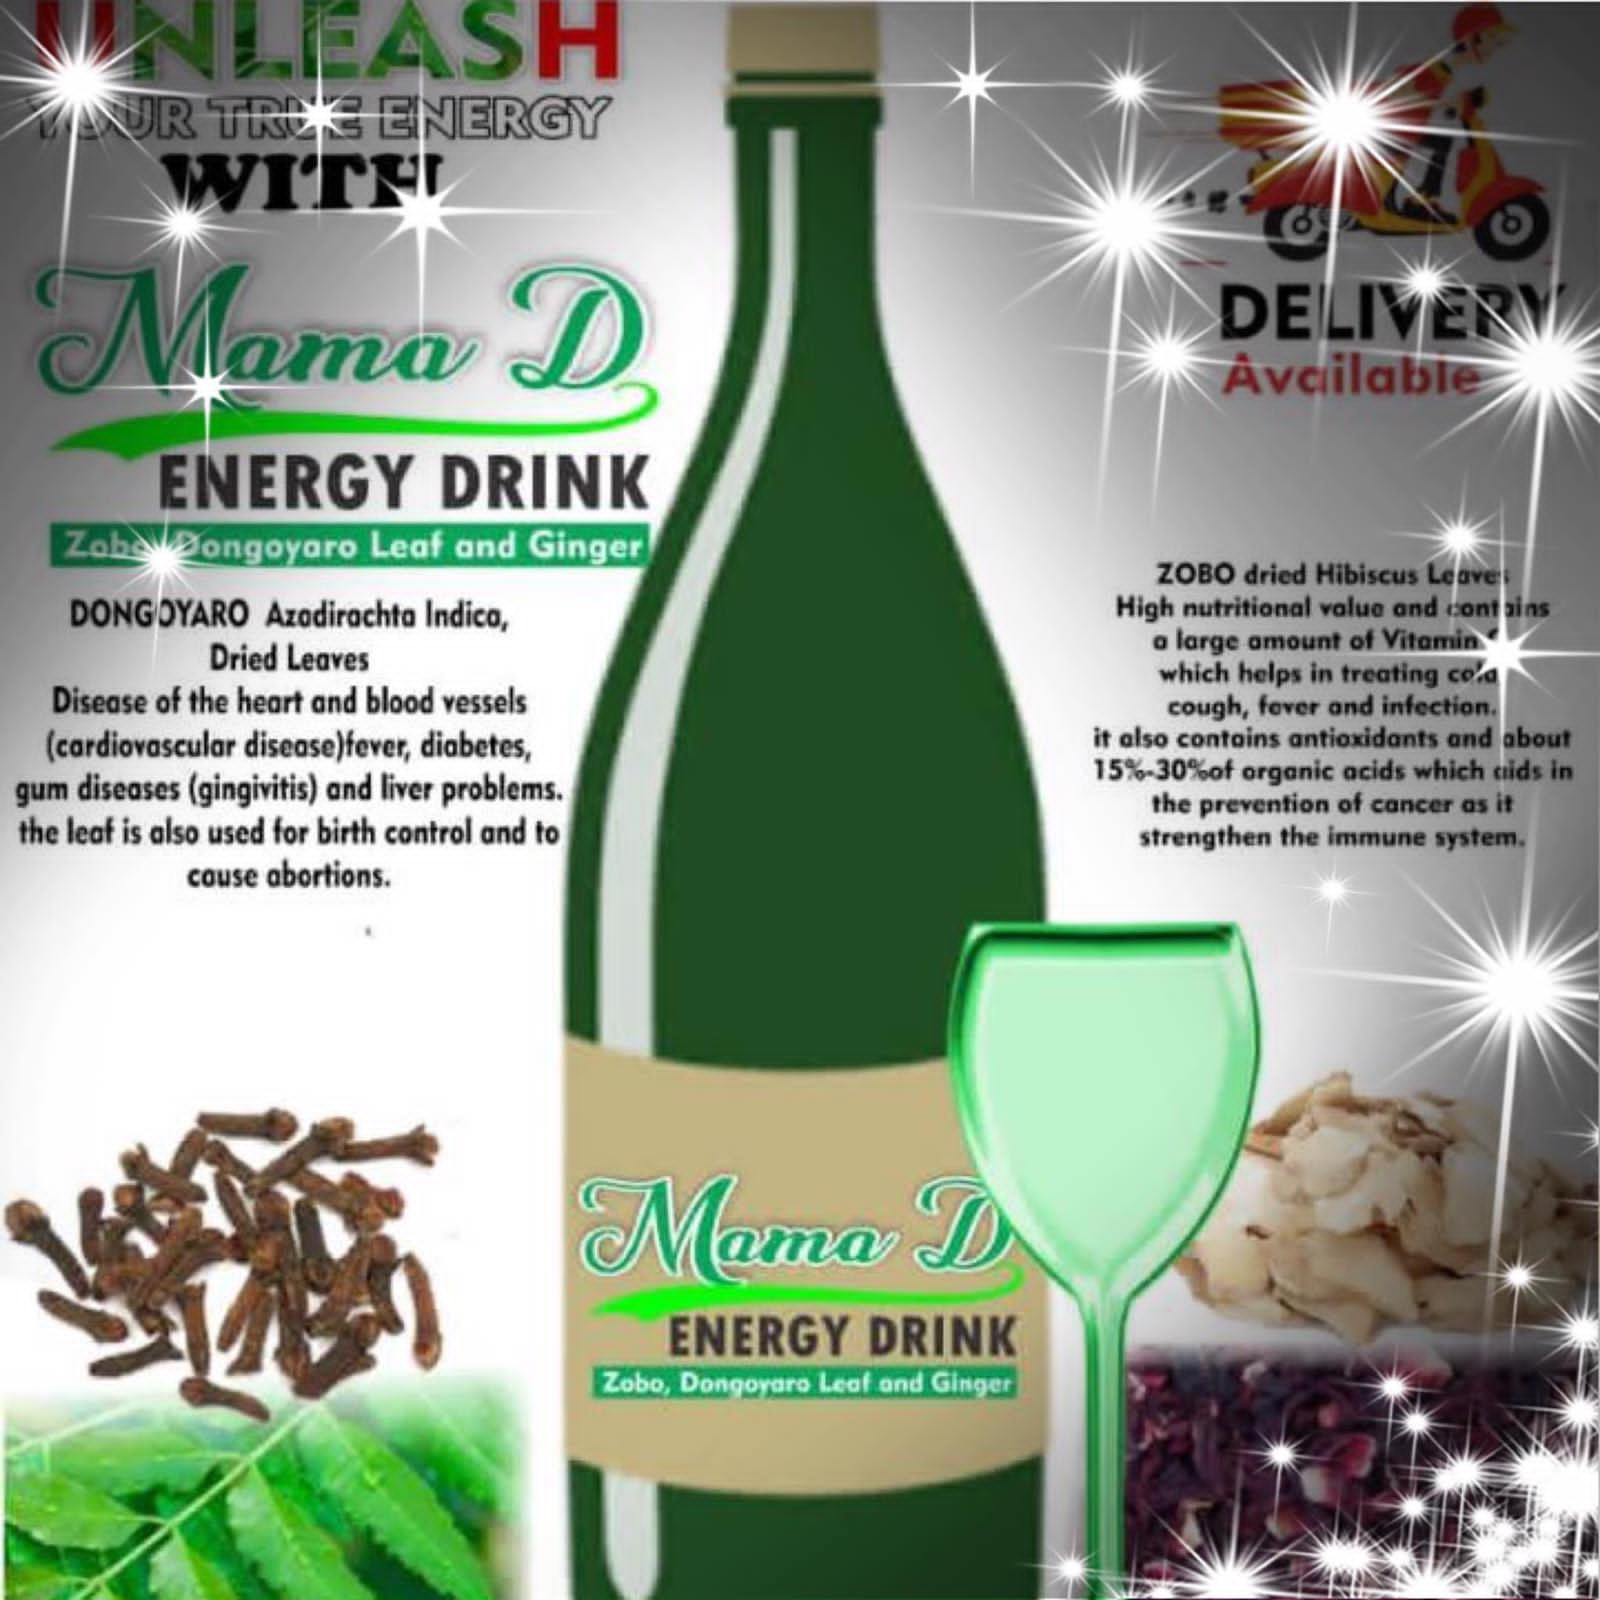 Mama D energy drink